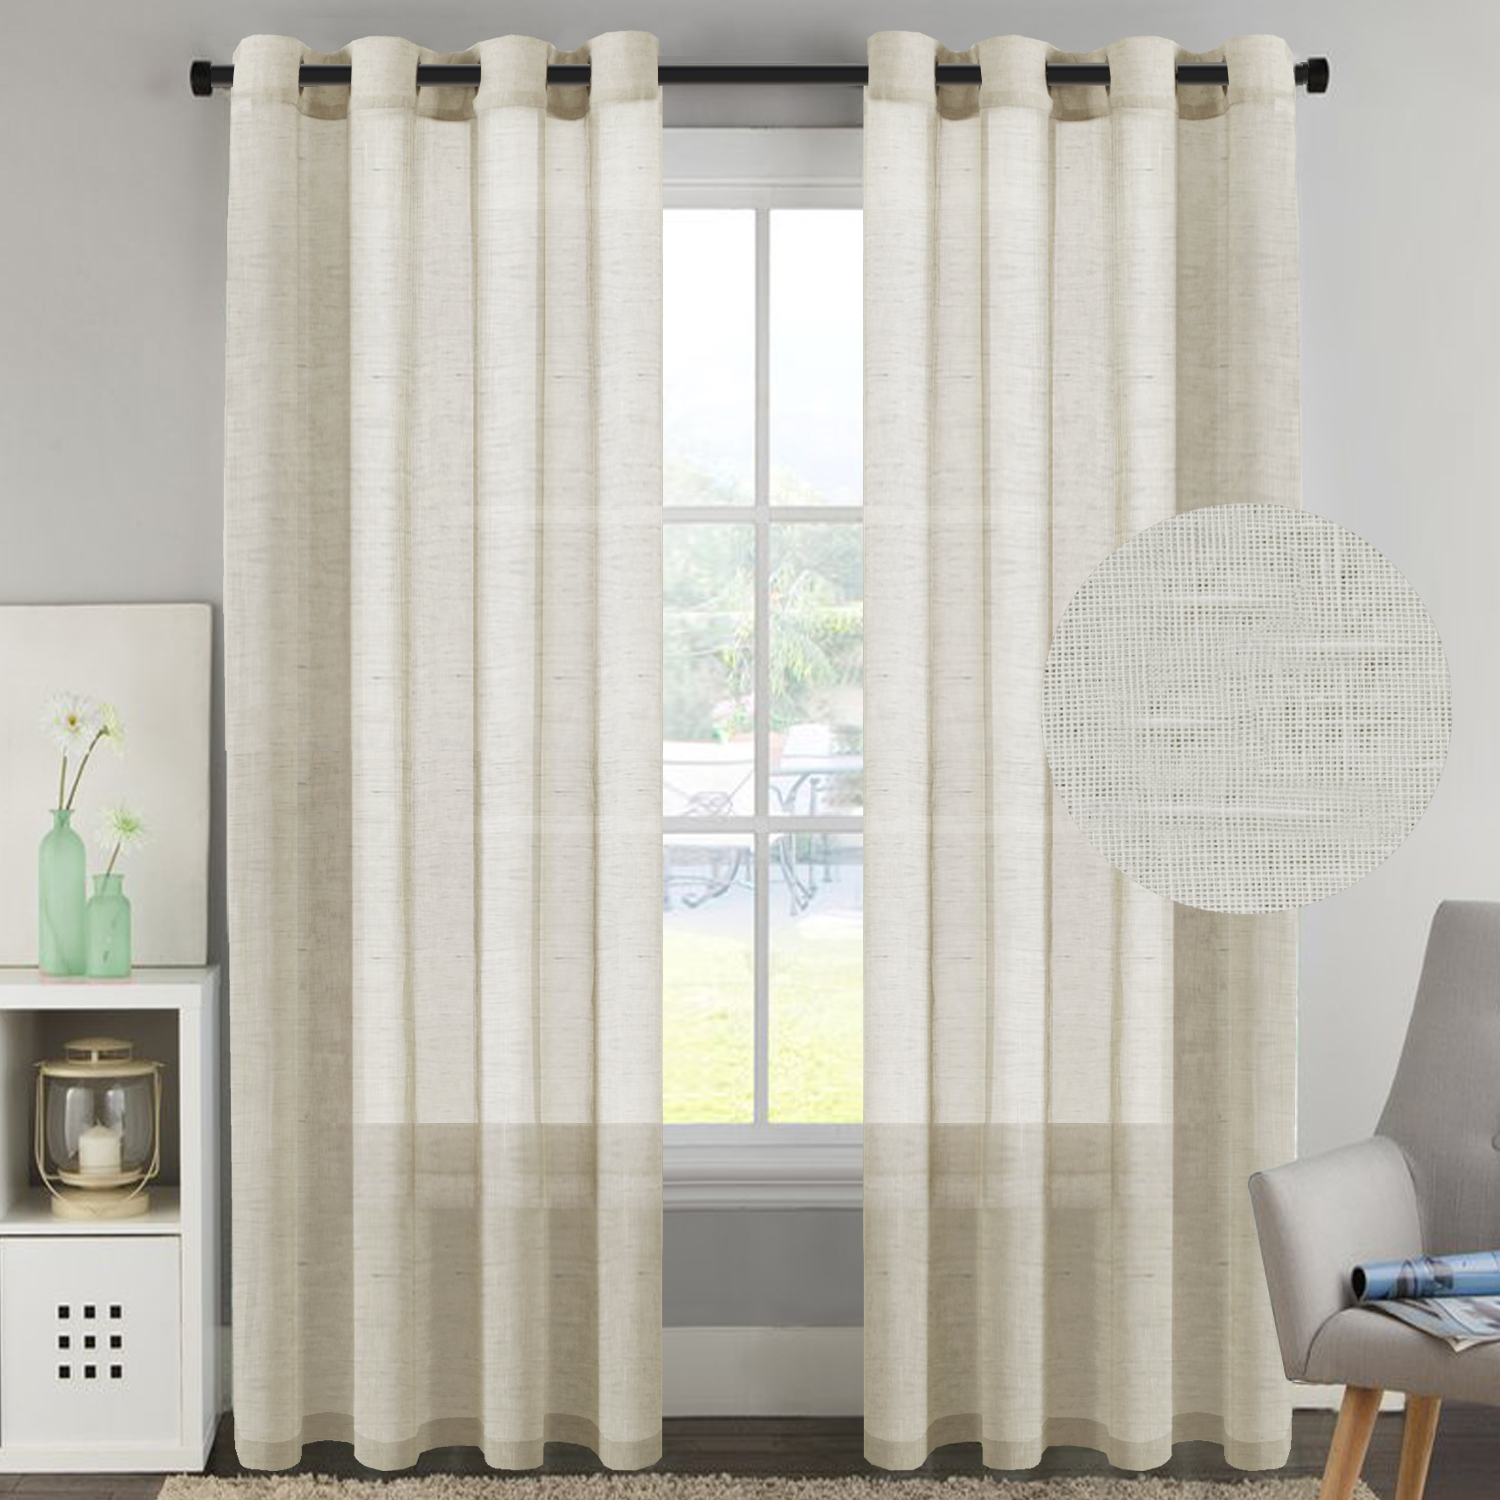 h versailtex 52 inch width by 96 inch length linen and poly curtain sheers for living room nickel grommet top window panels set of 2 natural